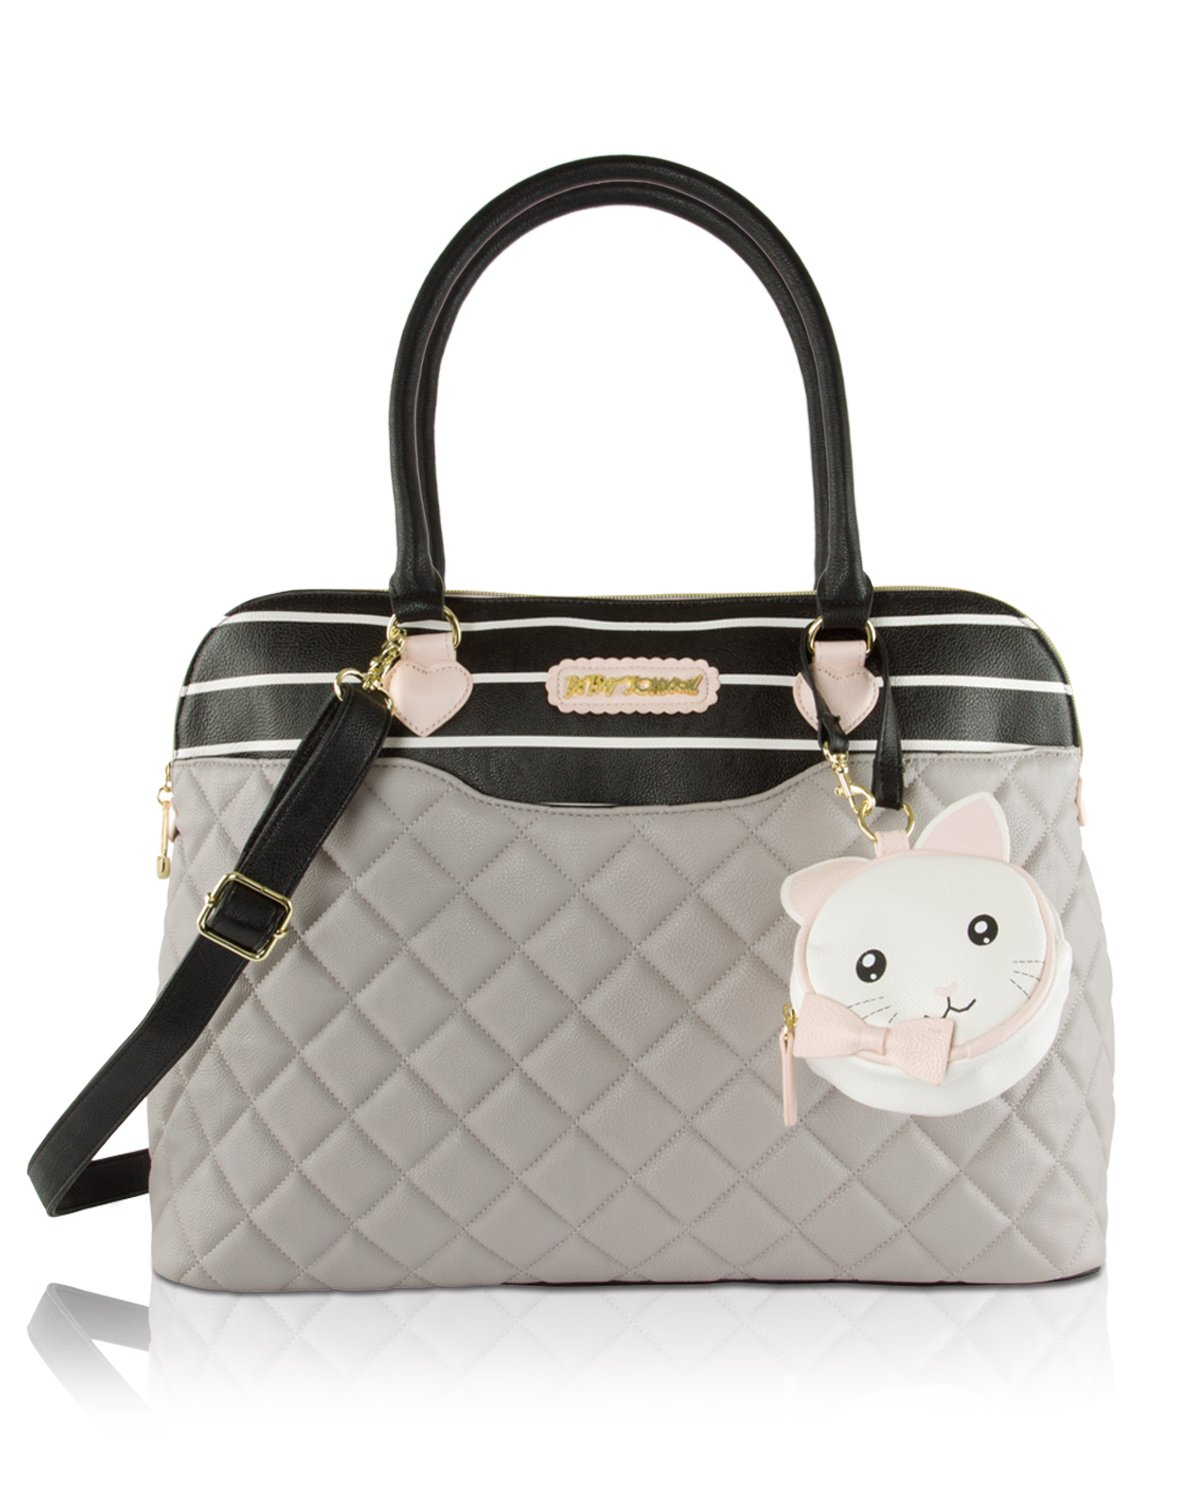 Betsey Johnson 3pc Zig Zag Weekender Multi-Function Diaper Satchel Tote Bag with Changing Mat - Chvron Cream/Black BBD1580